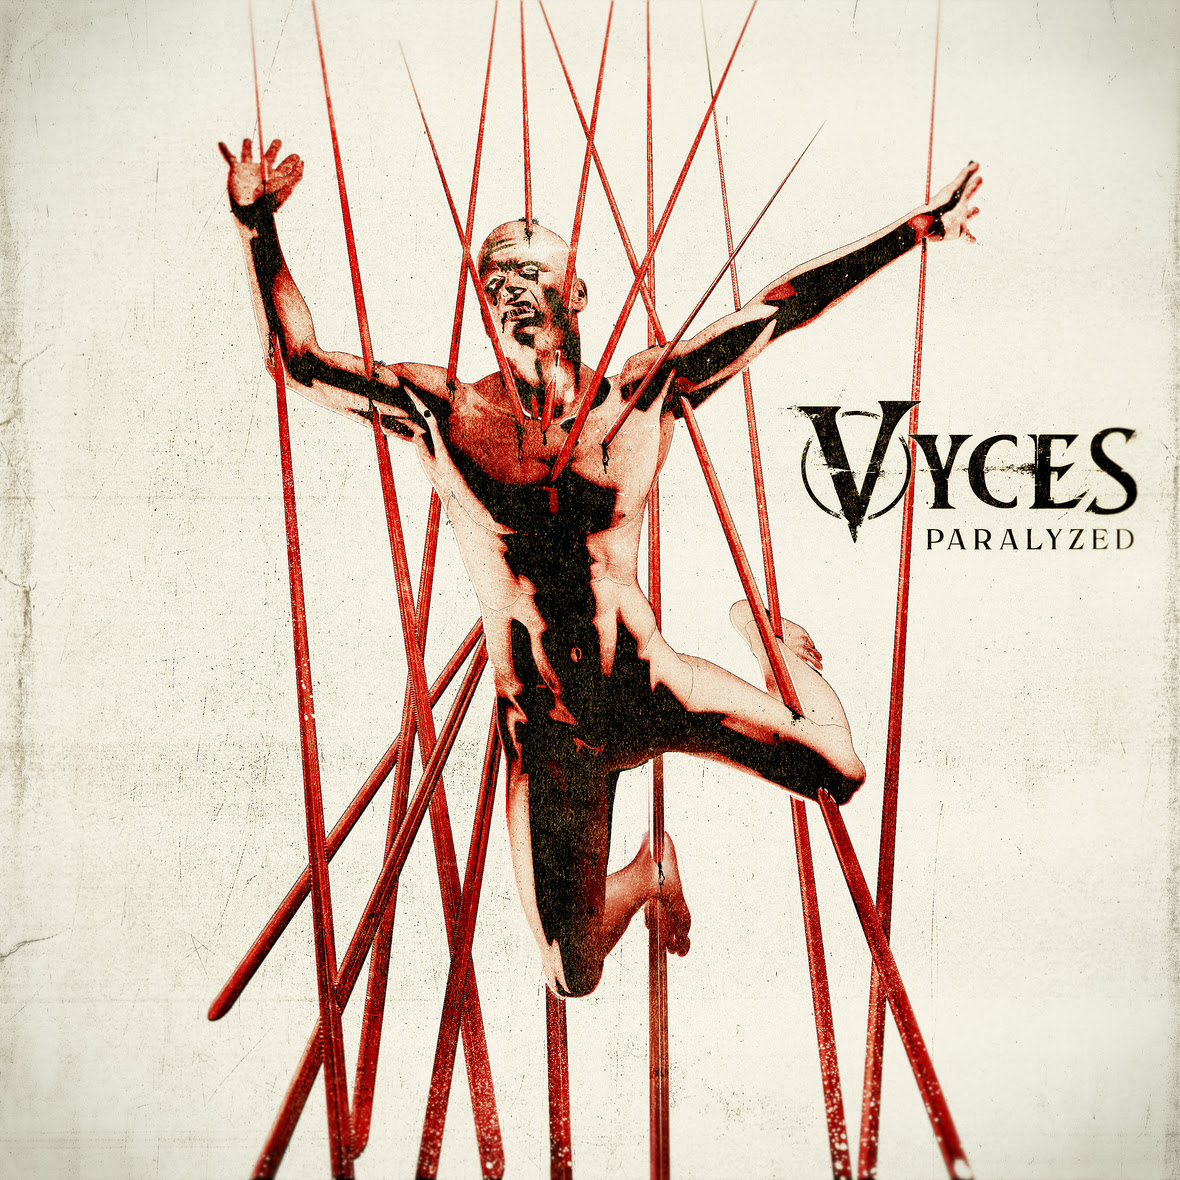 VYCES-Art-Paralyzed-Hires